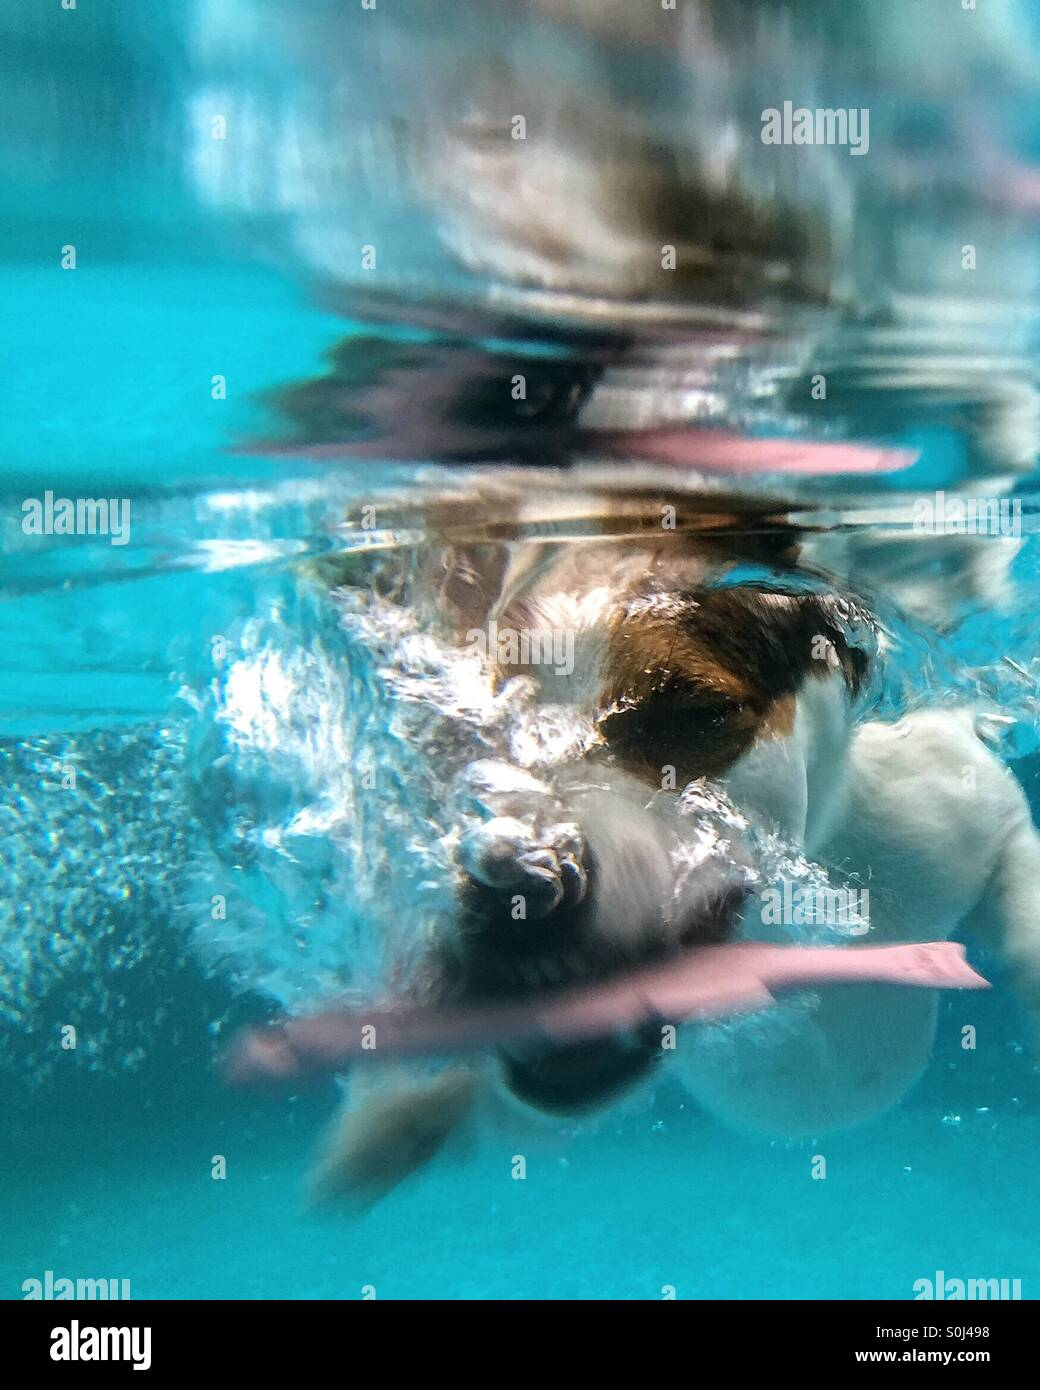 Jack Russell Terrier dog diving under water to get submerged toy. Stock Photo